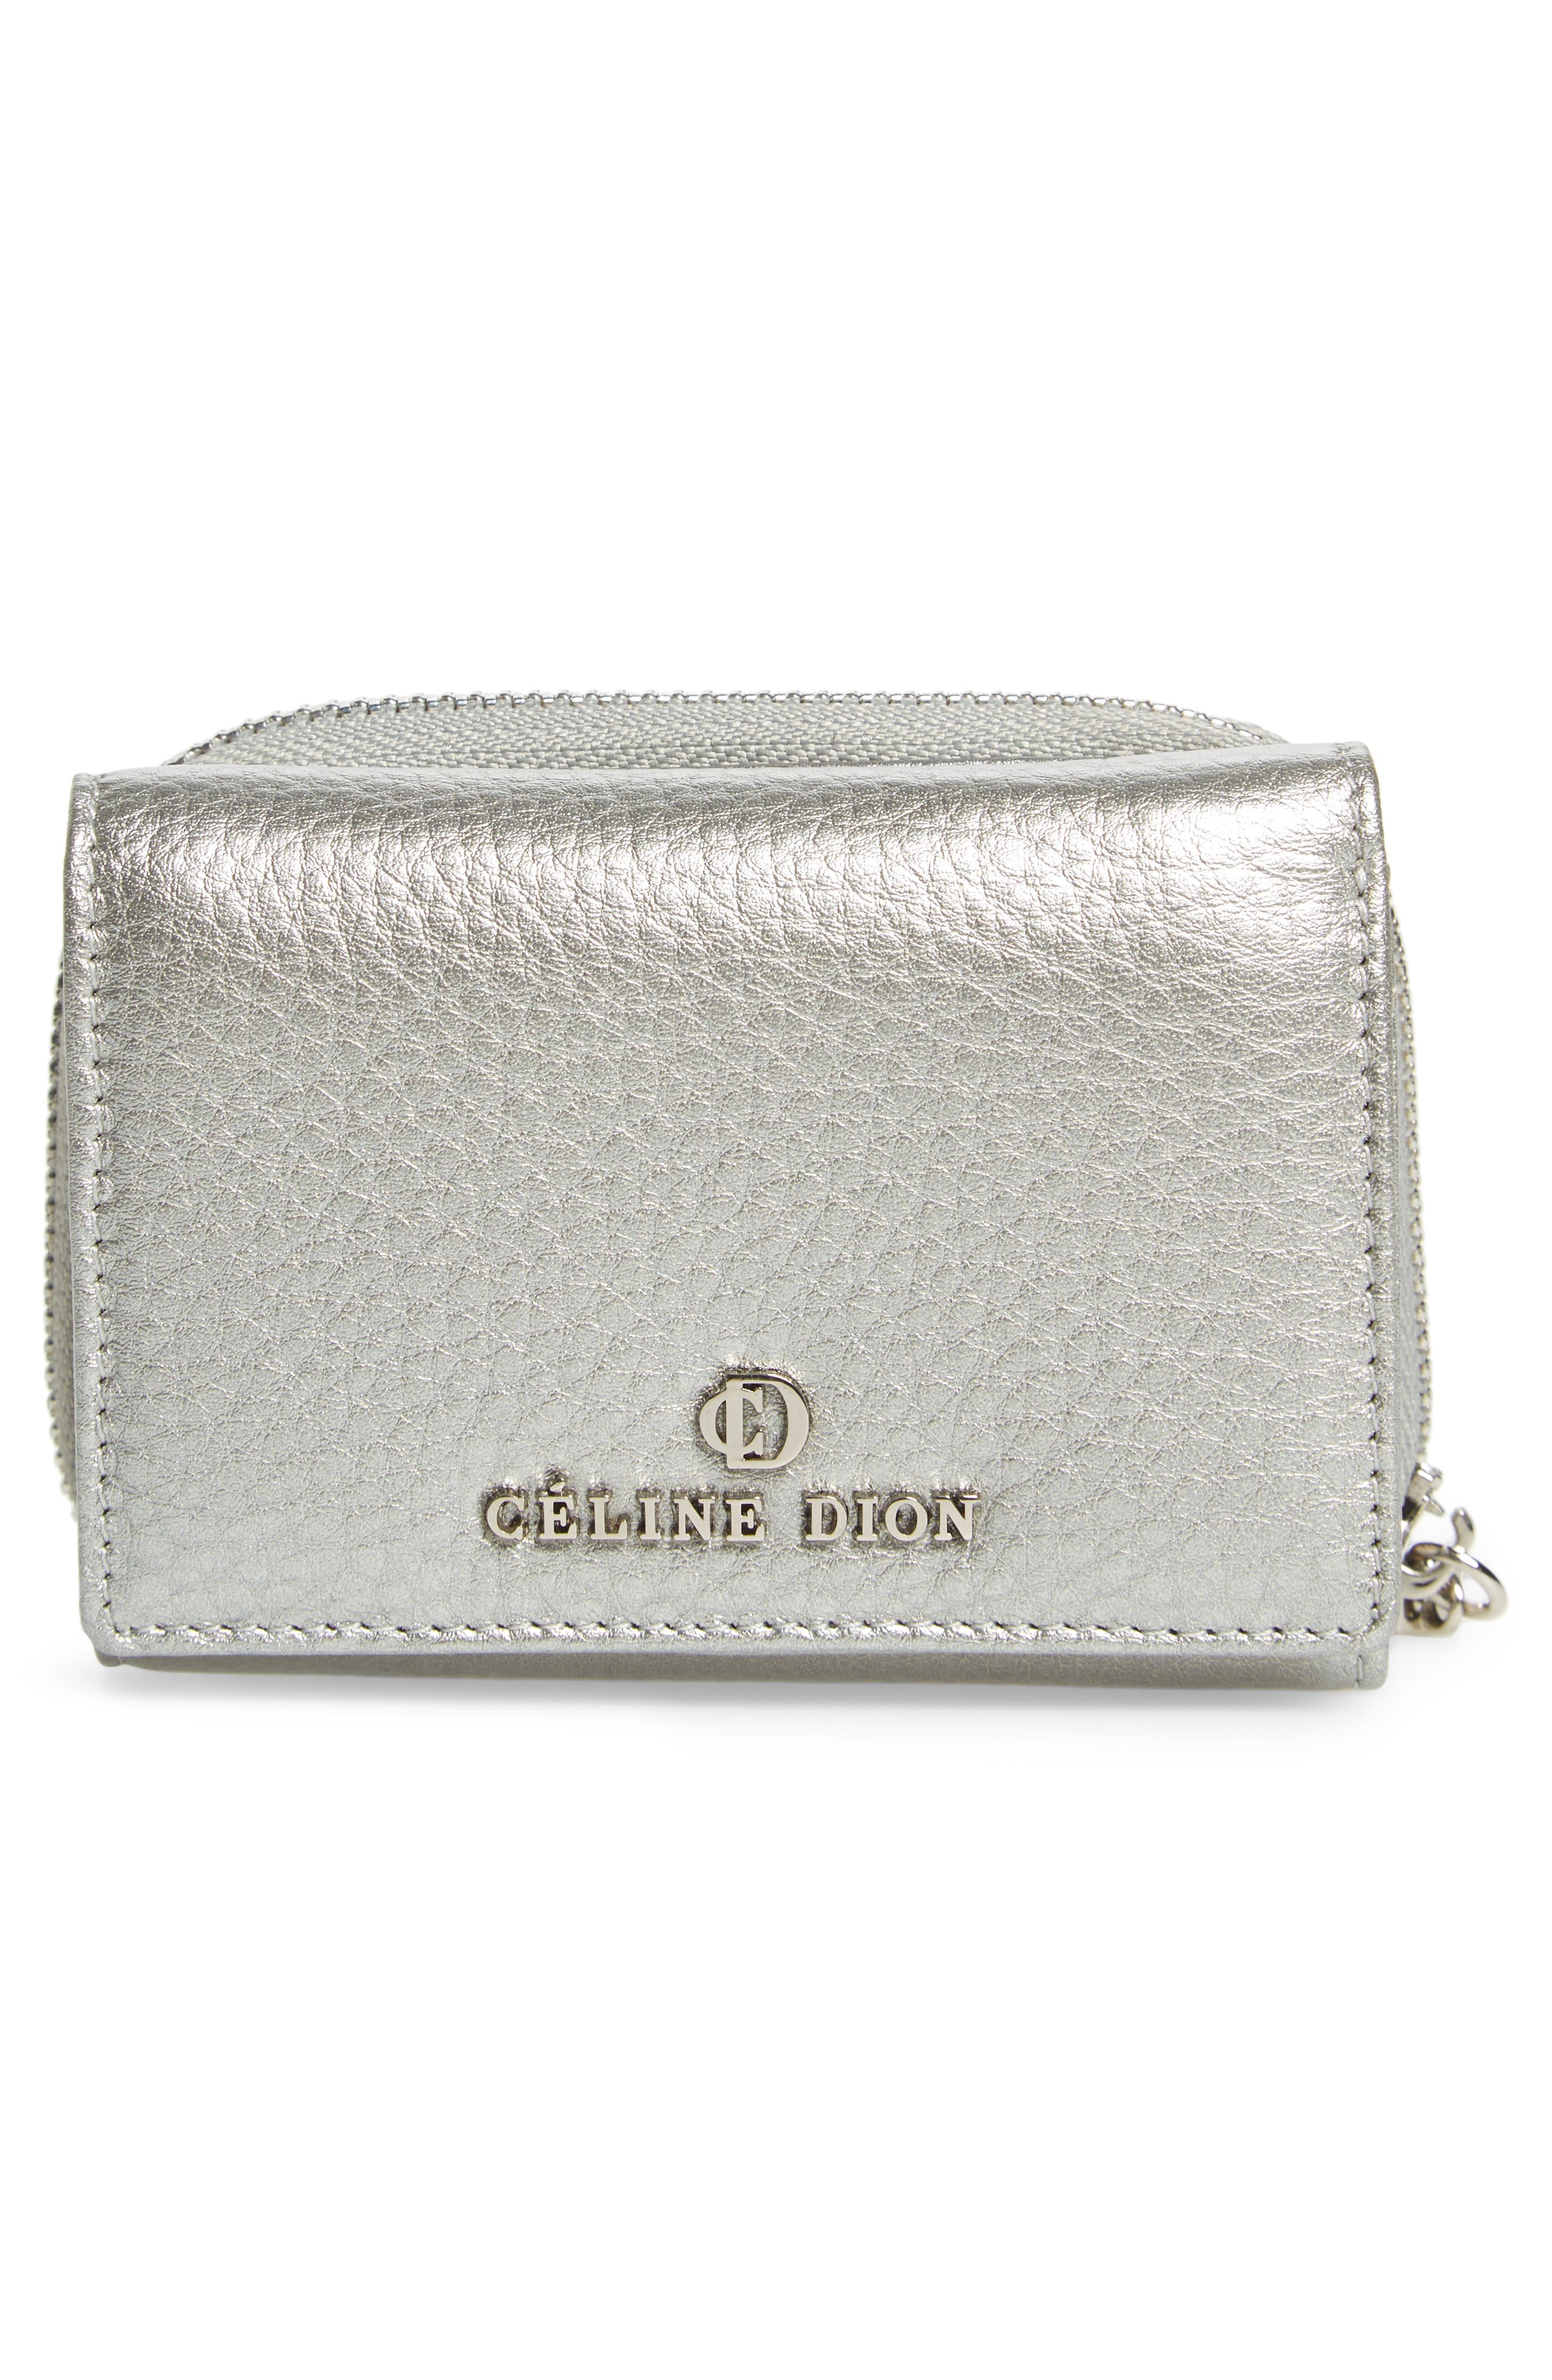 Céline Dion Small Adagio Leather Wallet,                             Alternate thumbnail 14, color,